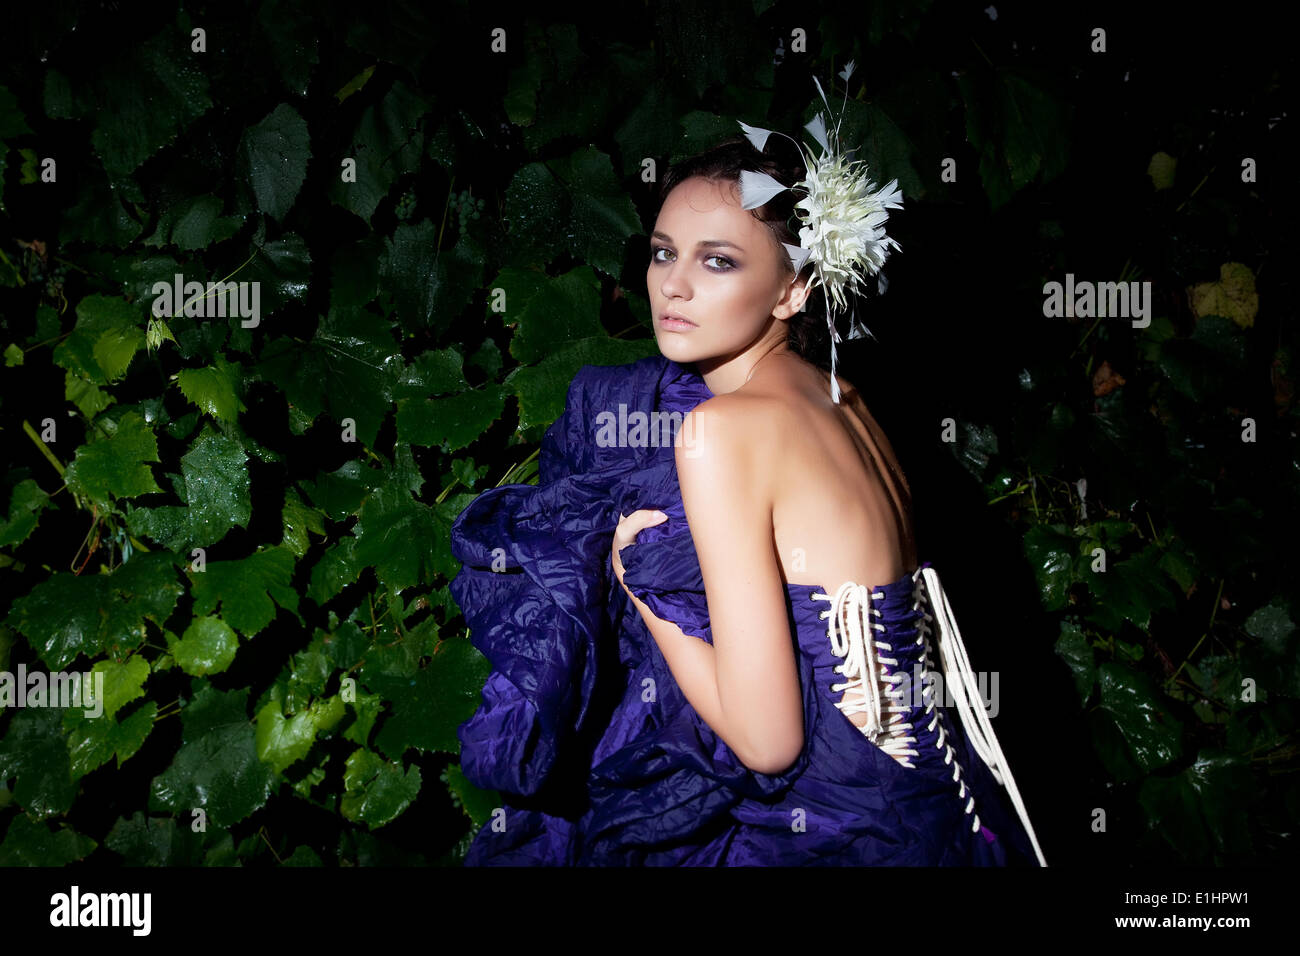 Nocturnal scenery - fashionable woman in blue dress among green plants - Stock Image